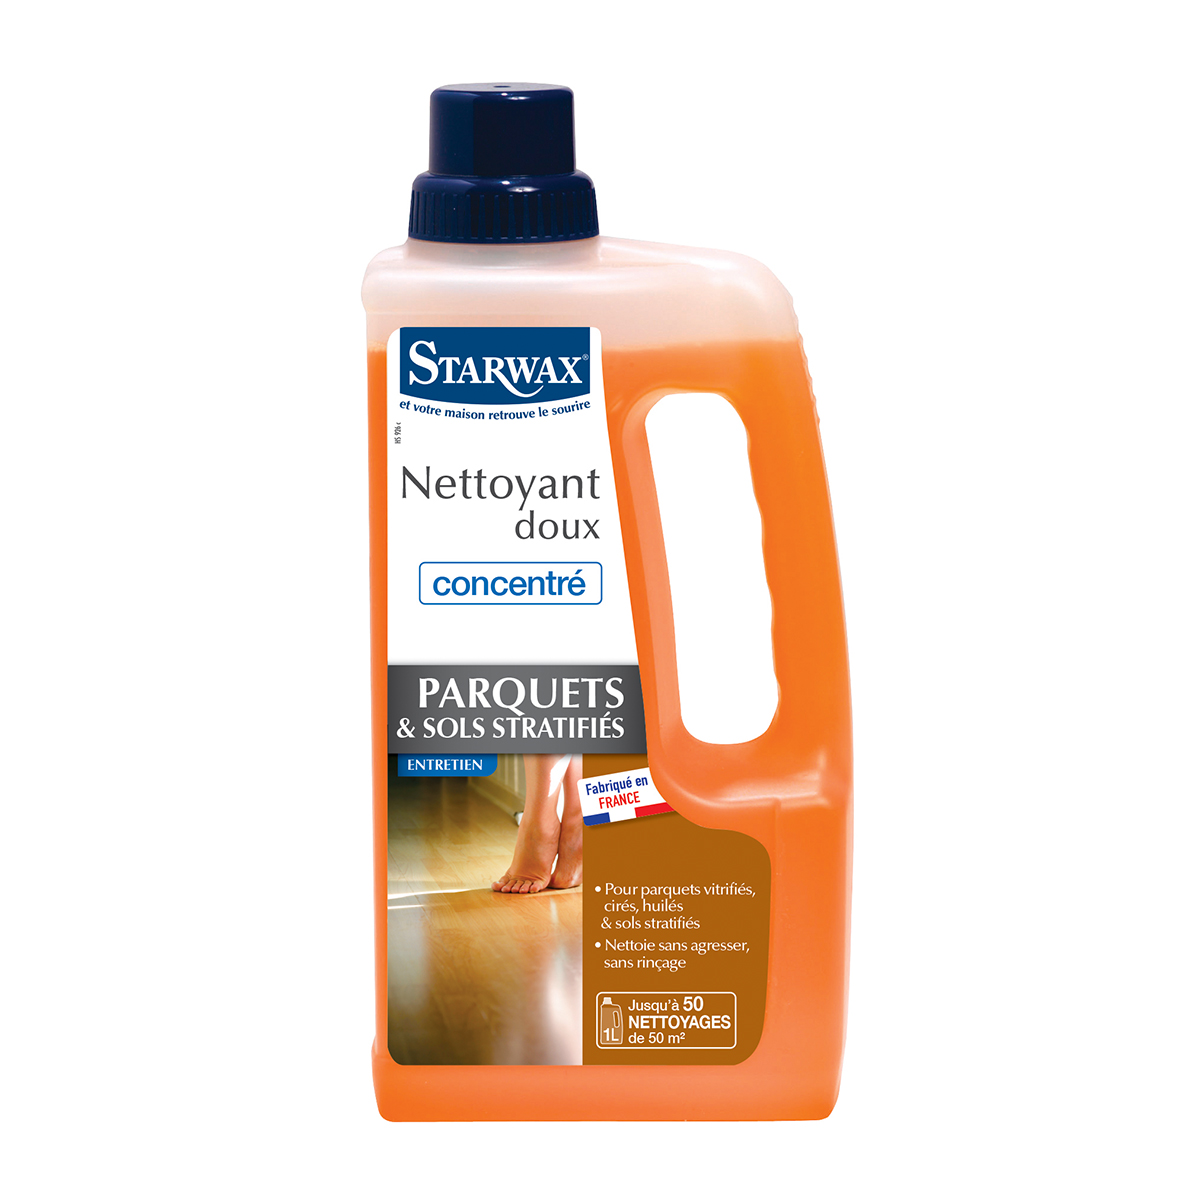 Regular cleaner - Starwax